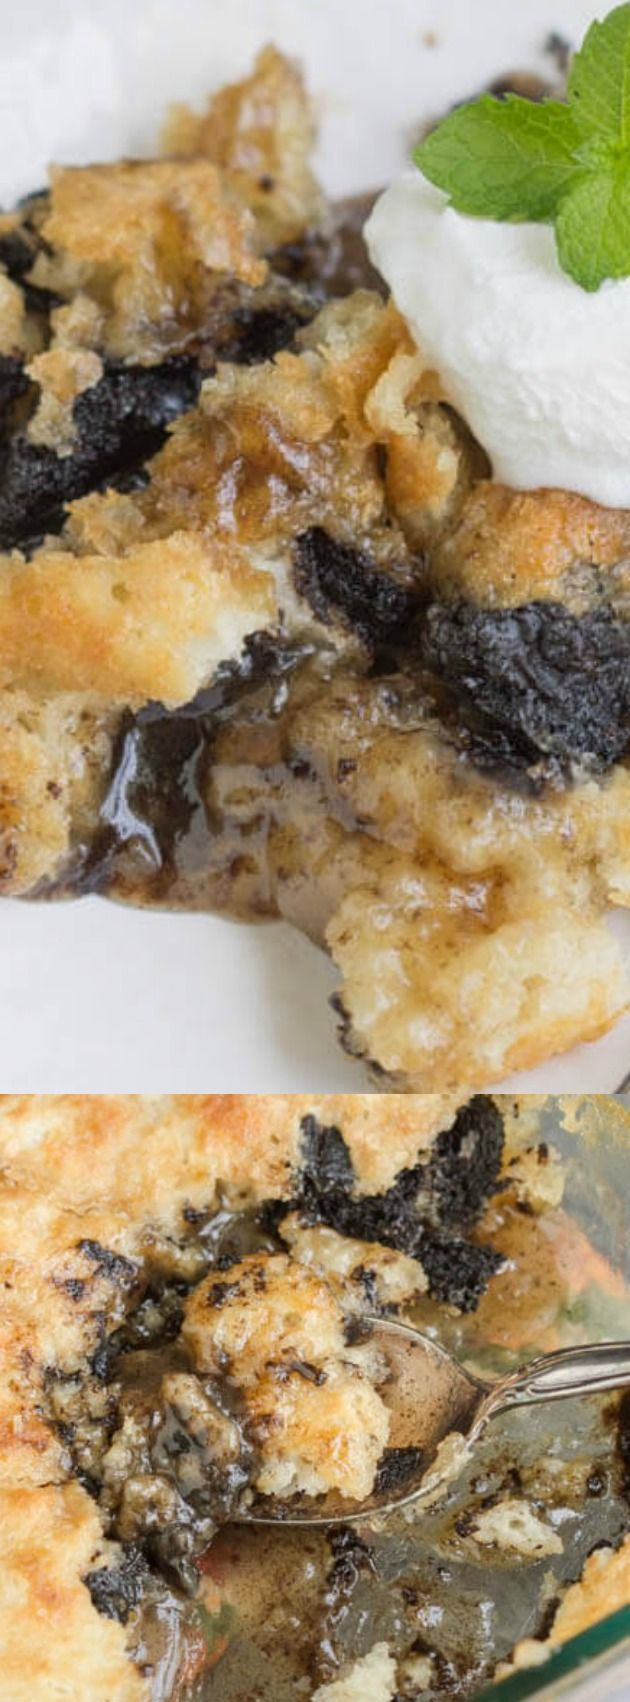 This Oreo Cobbler from Paula over at Call Me PMc is an easy dessert recipe that you are going to wish you tried sooner. Only 3 steps stand between you and complete deliciousness. If you love Oreo Cookies and drool-worthy ooey, gooey cobblers then this recipe is for you!